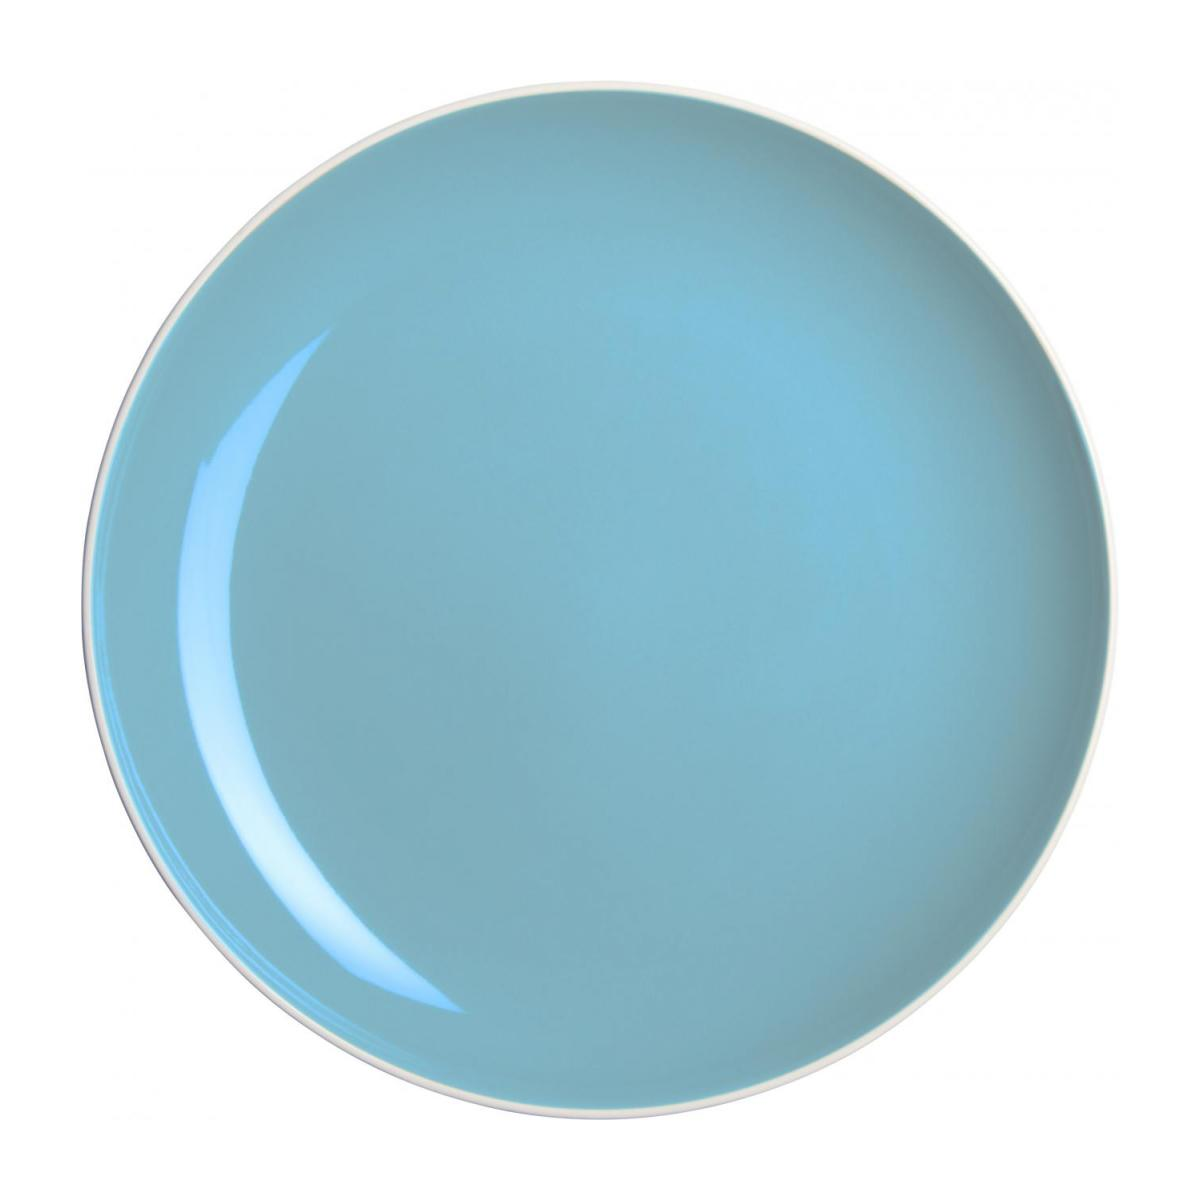 Dessert plate made of sandstone, white and light blue n°1